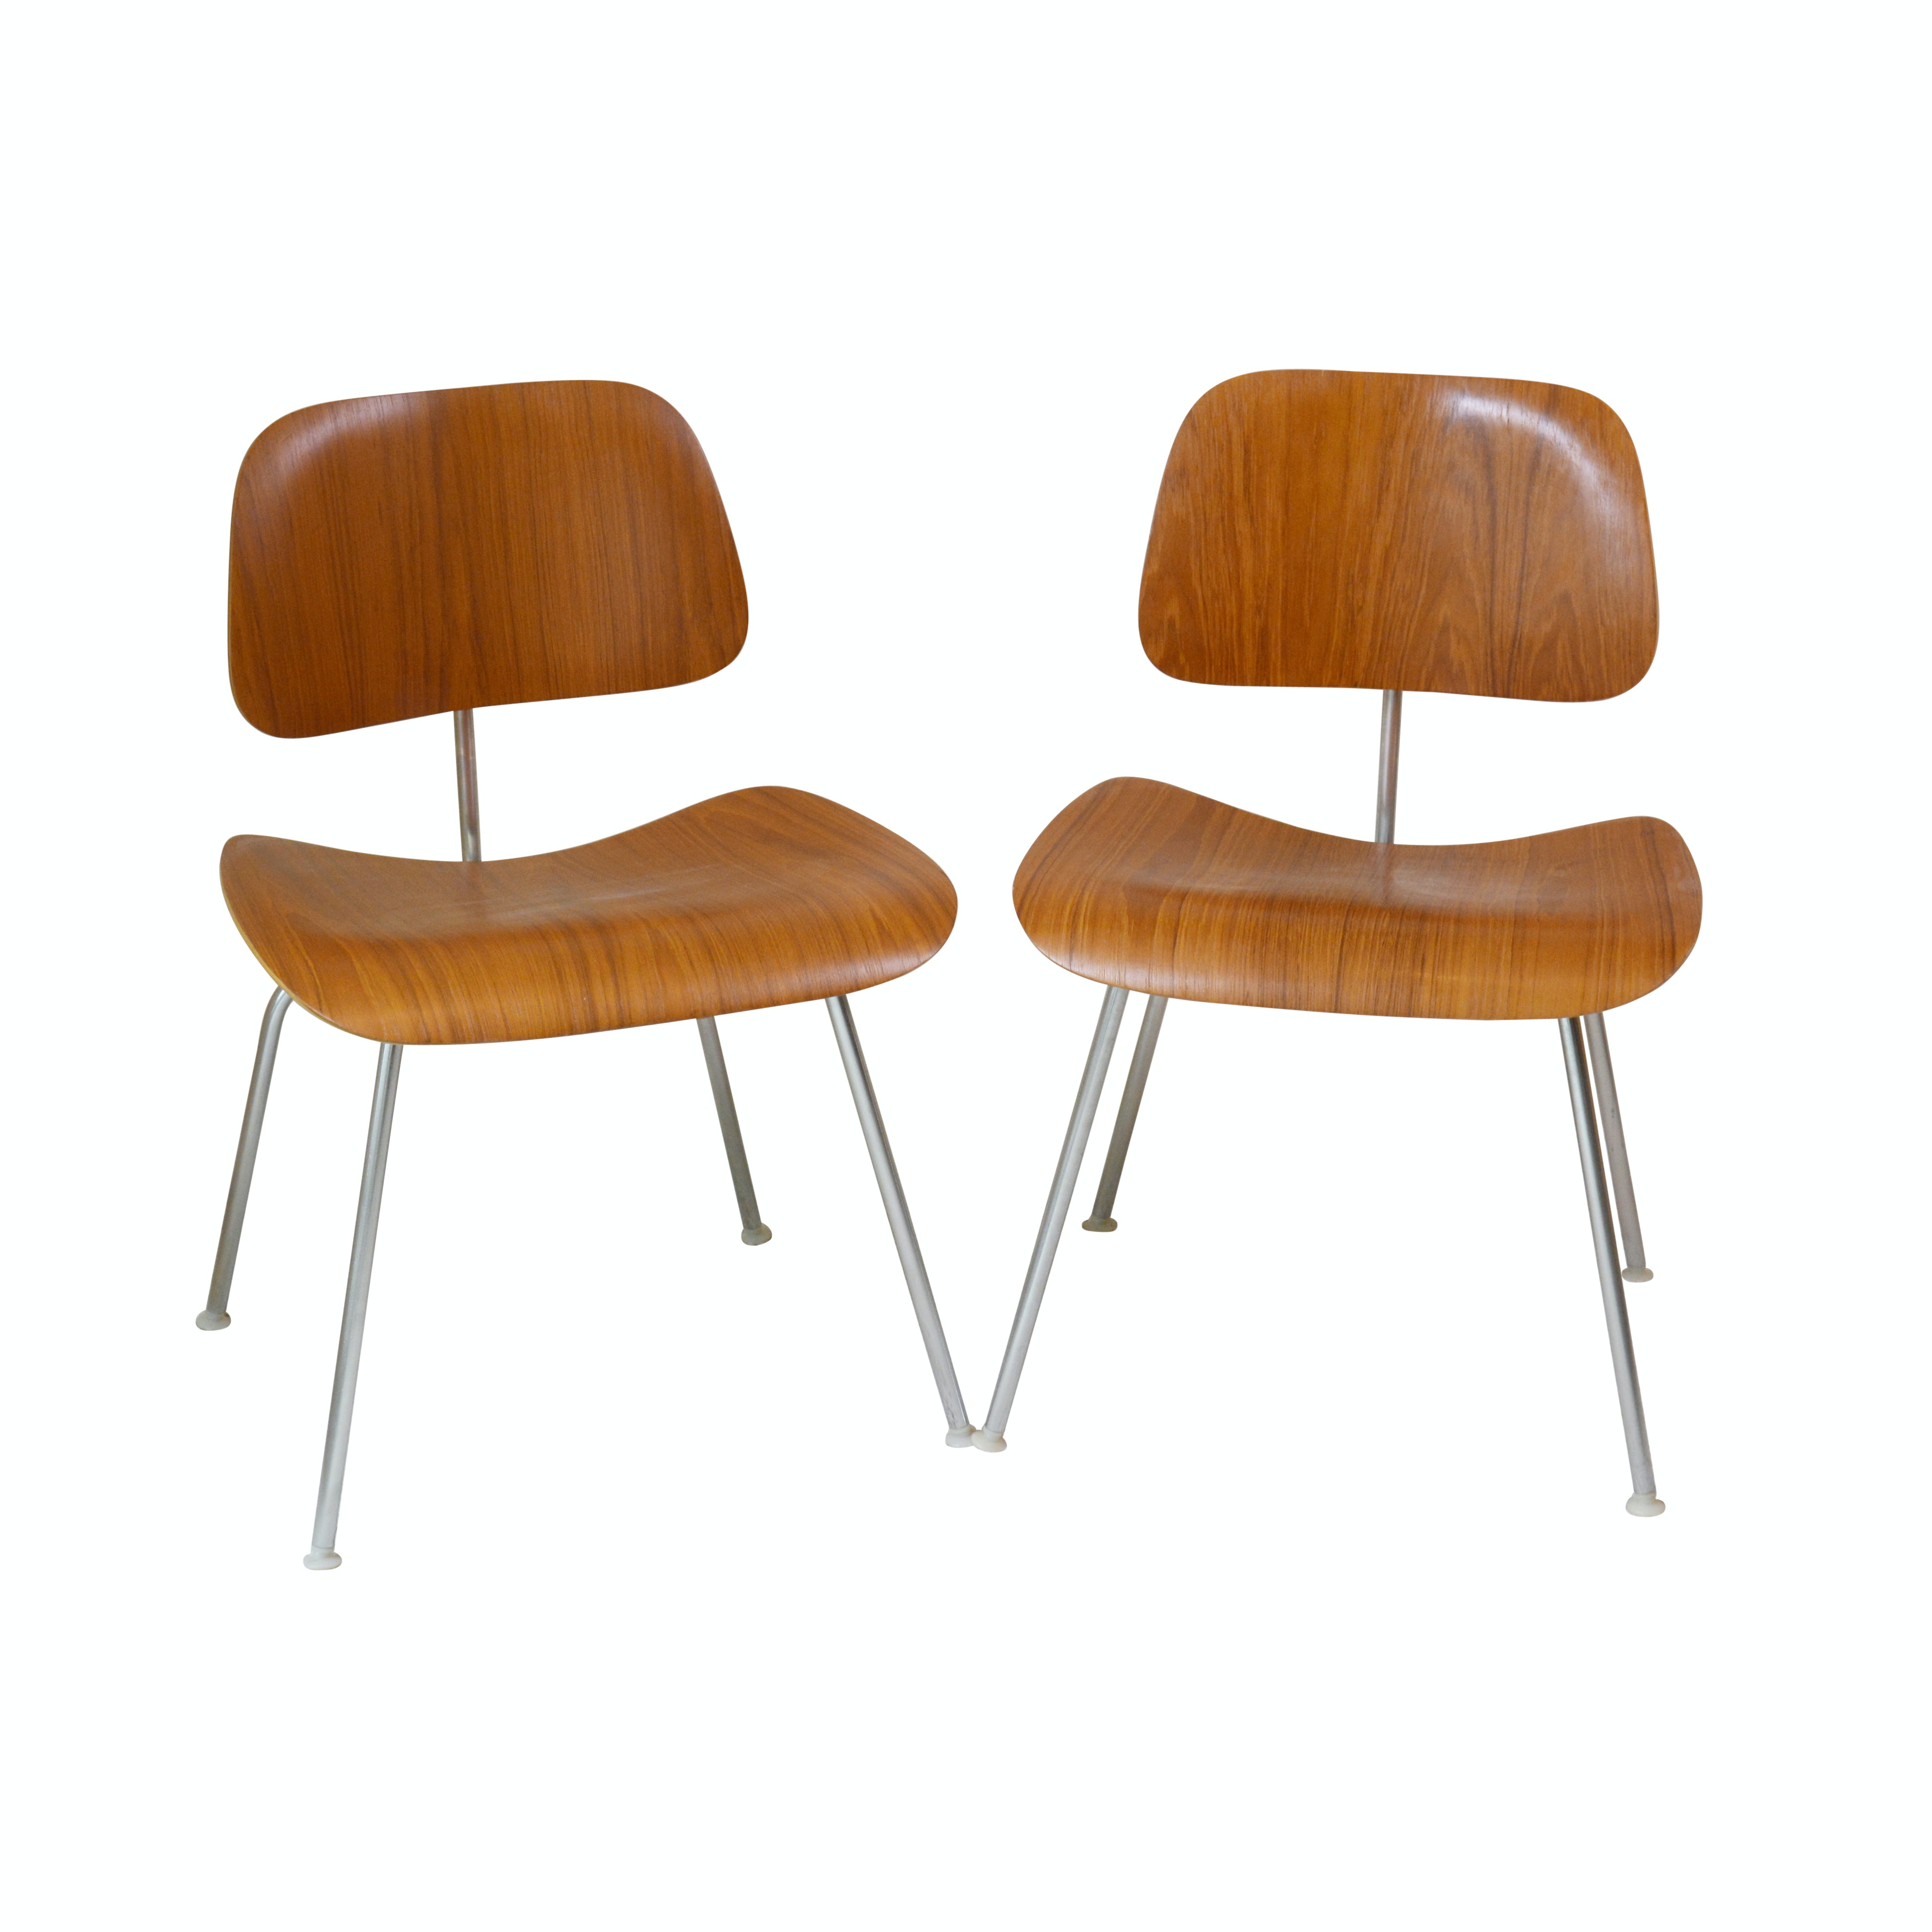 Eames Molded Plywood Accent Chairs